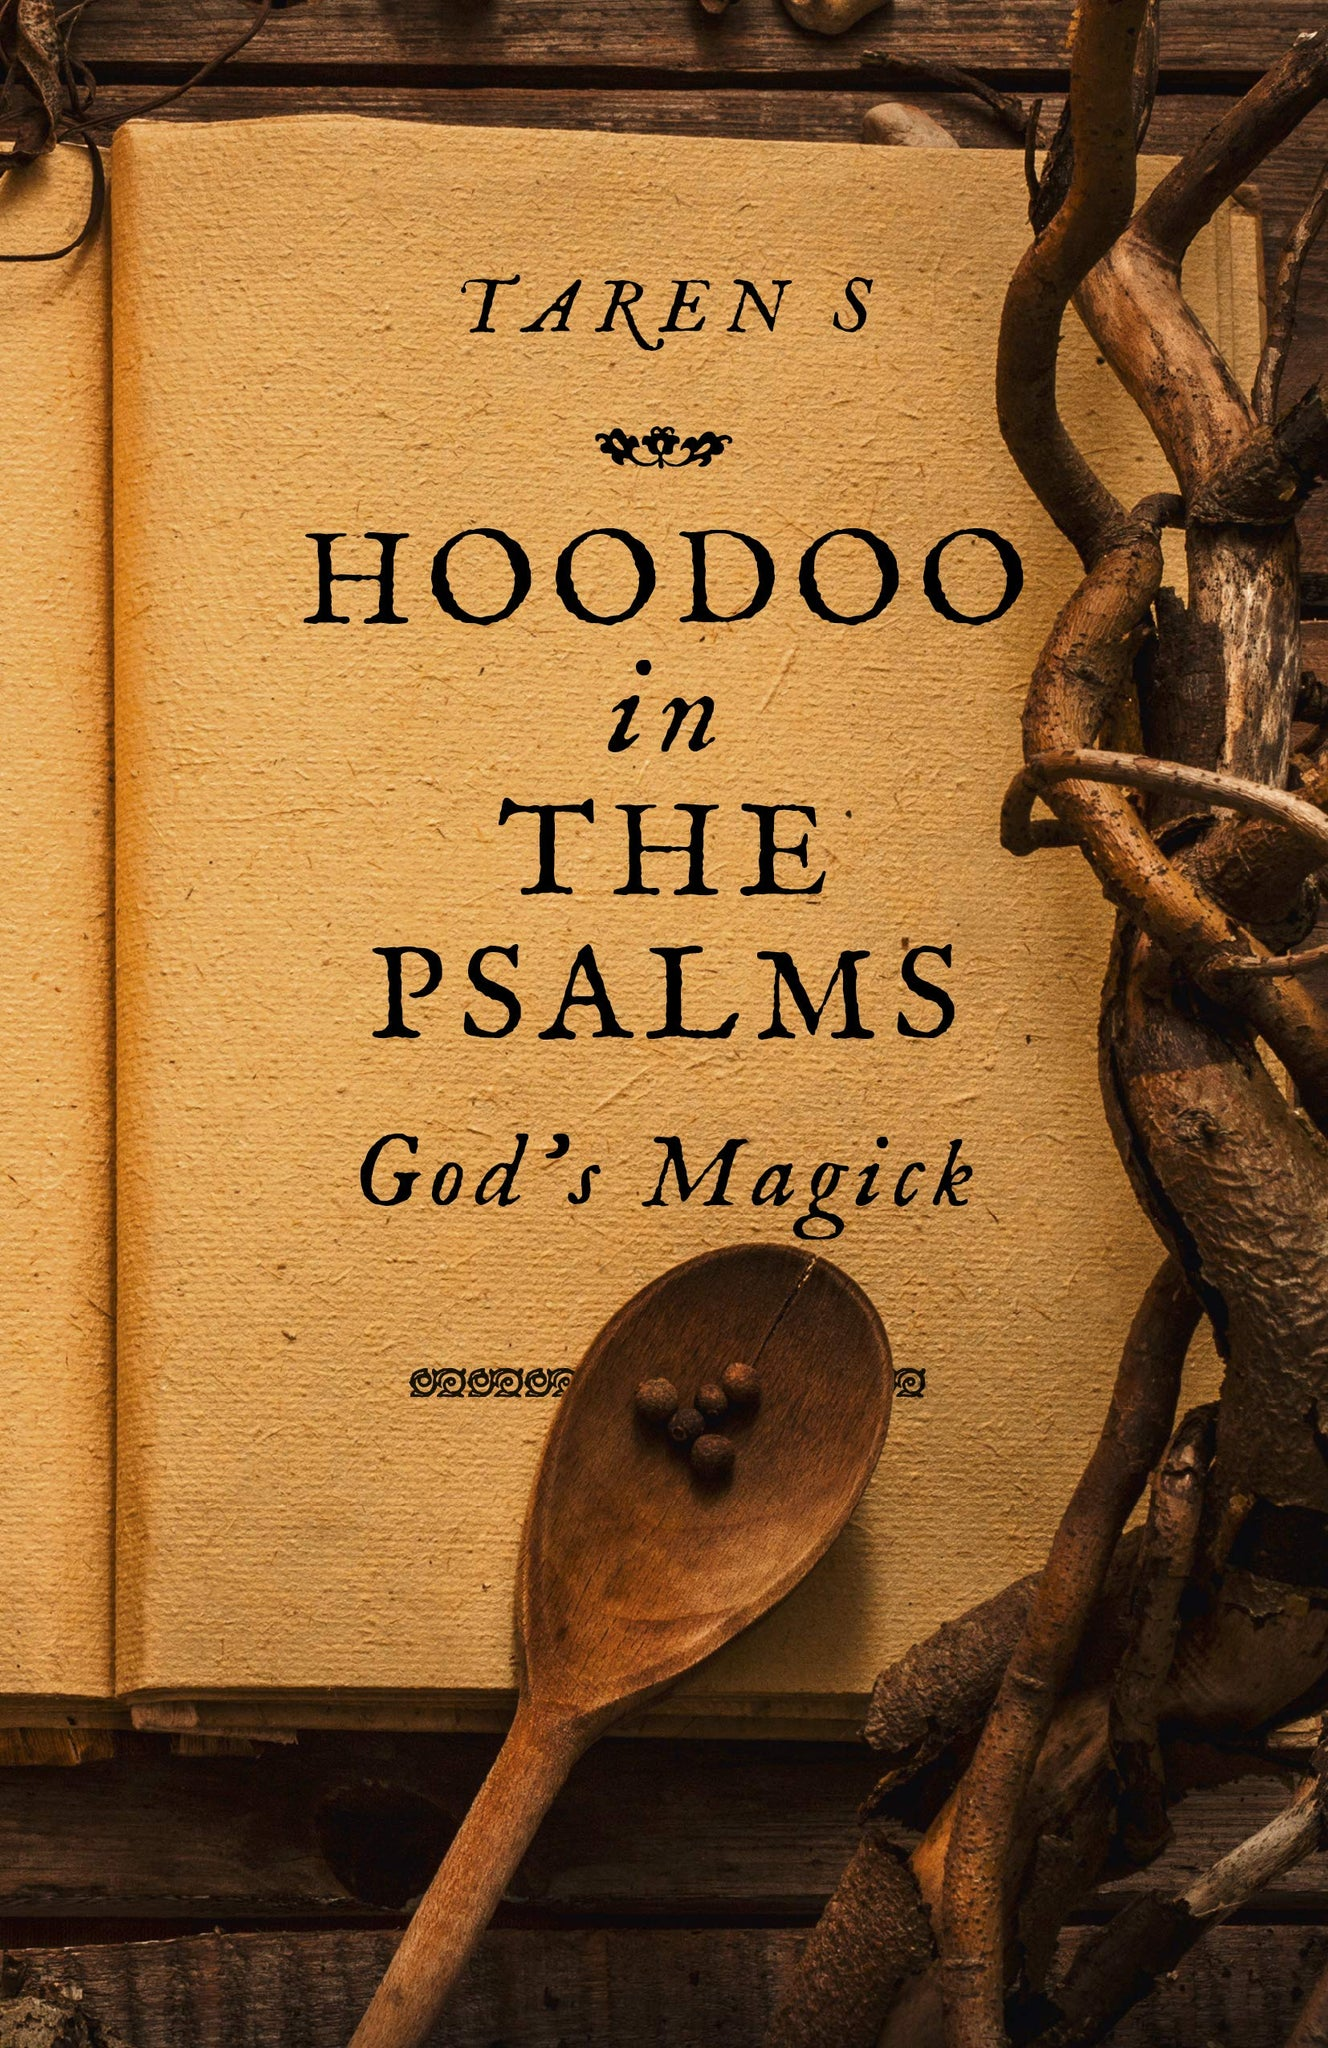 HOODOO IN THE PSALMS: God's Magick by  S, Taren